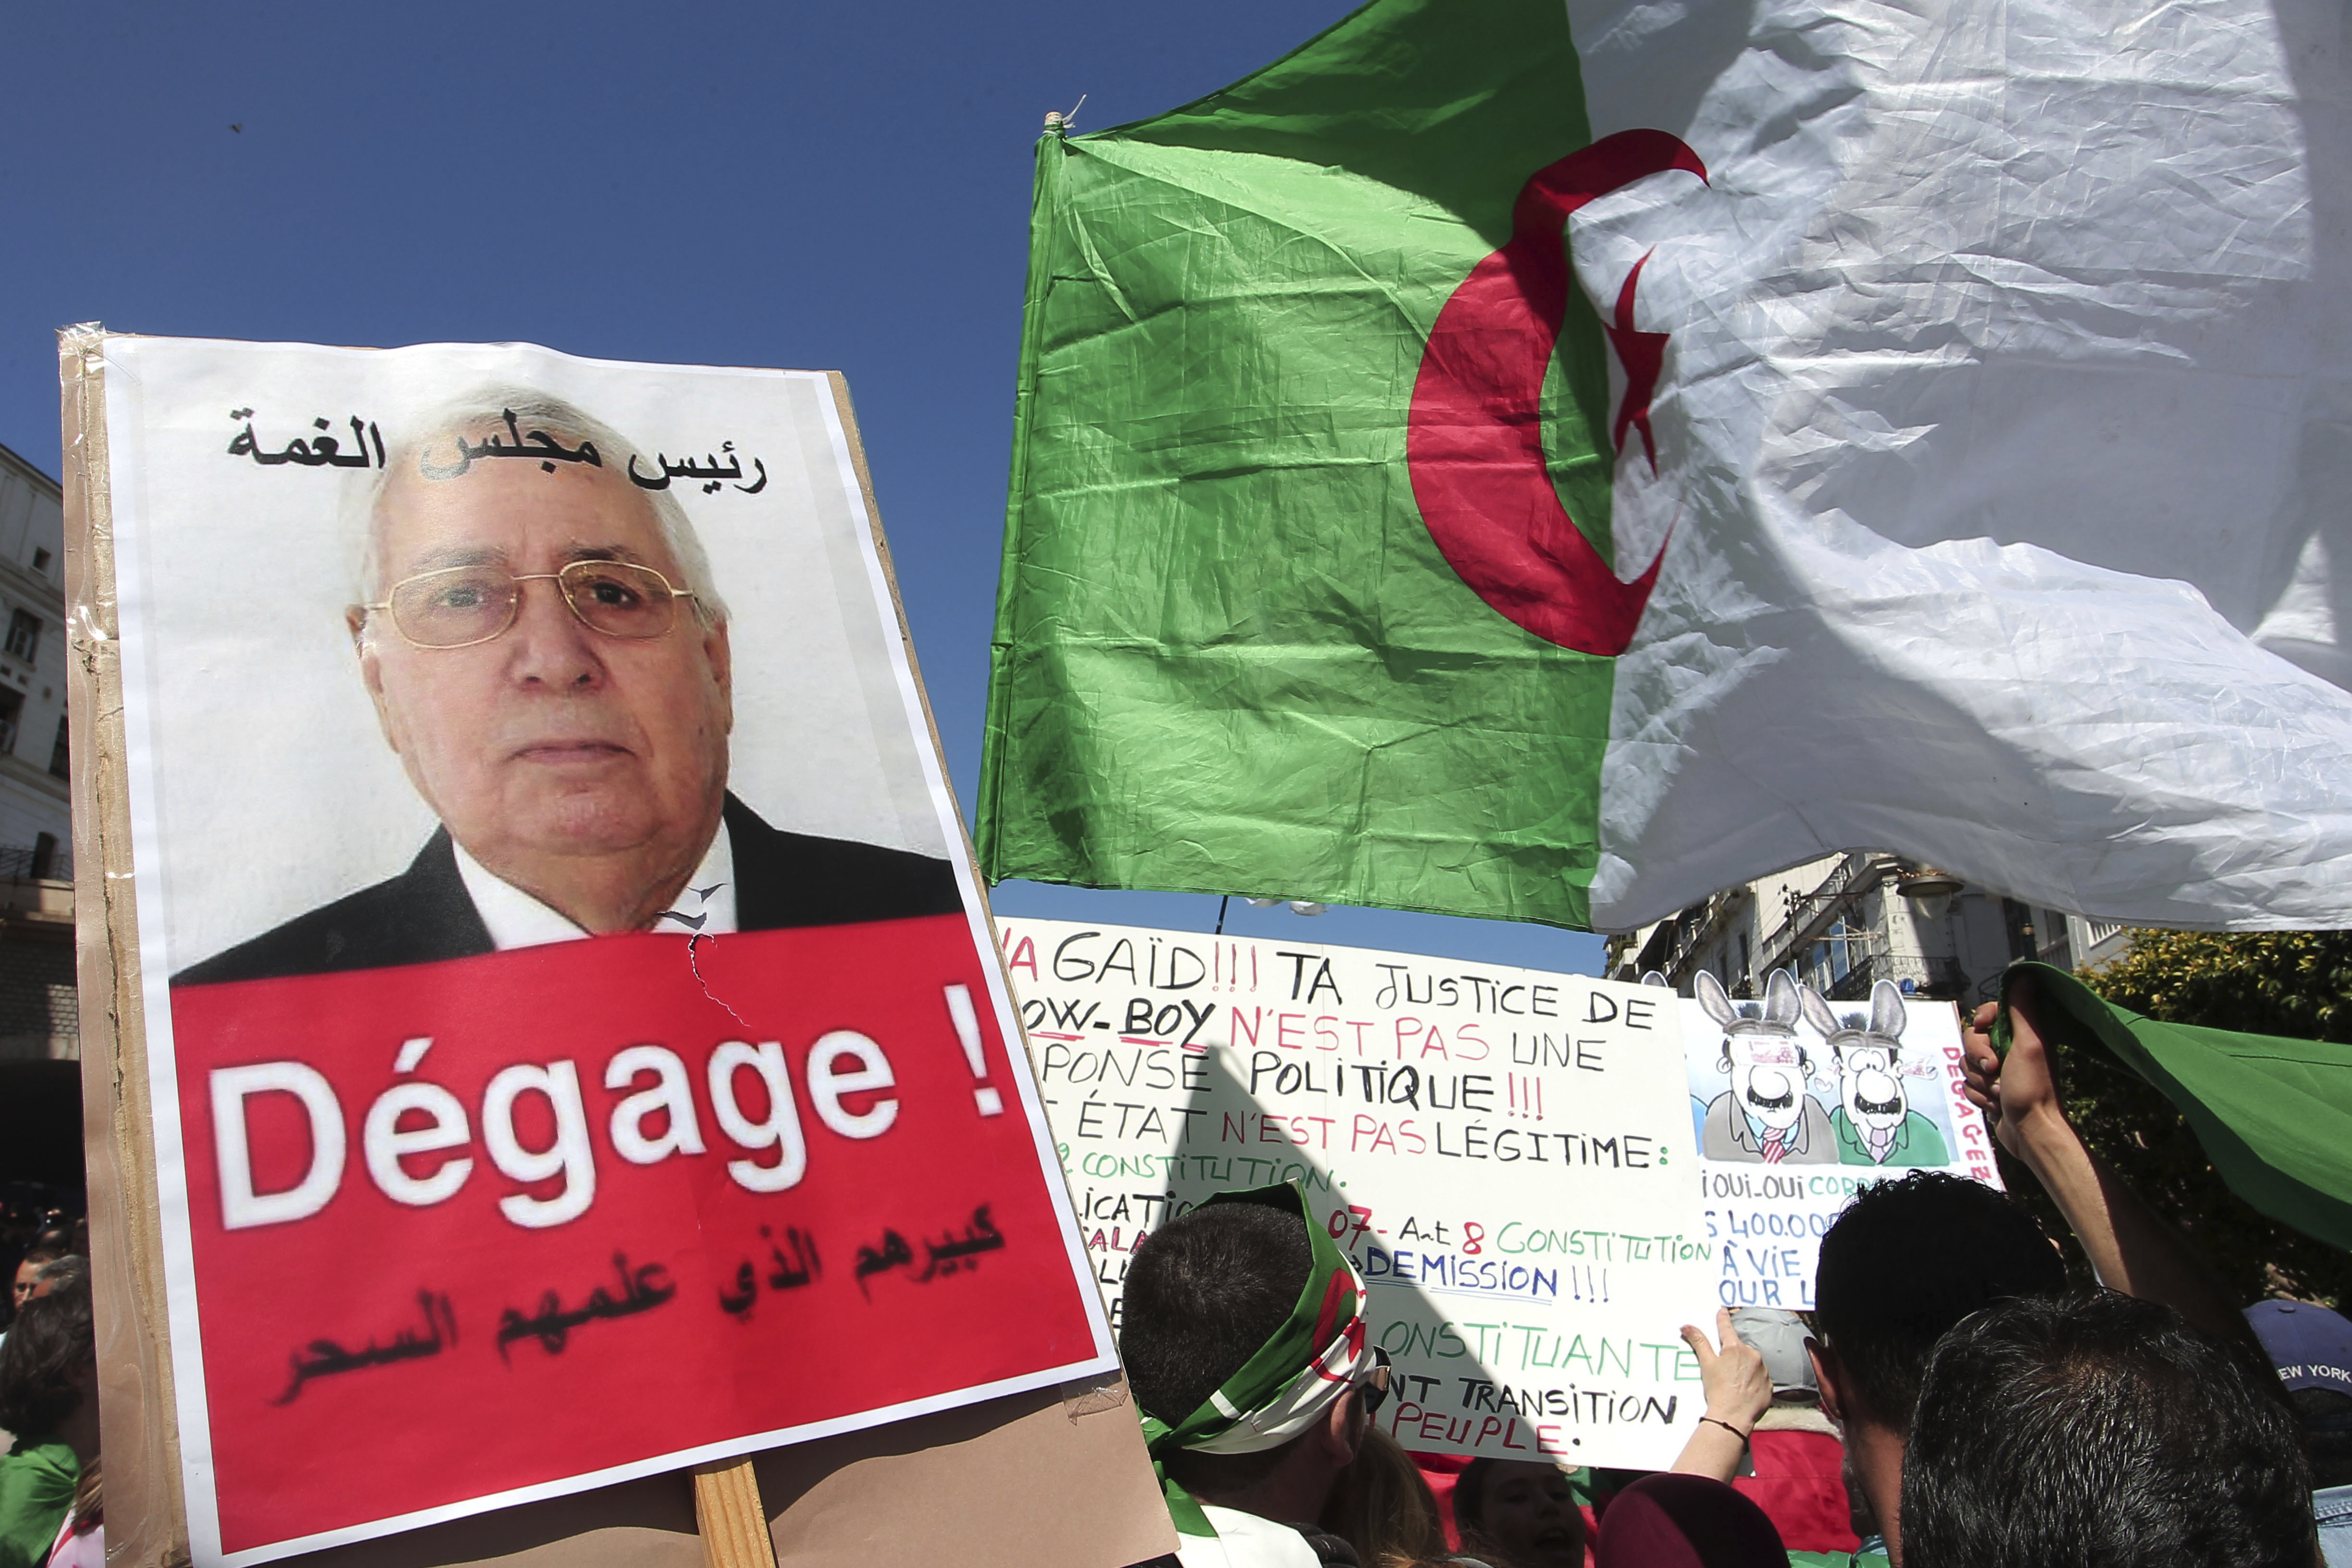 A demonstrator holds a placard showing Abdelkader Bensalah and reading